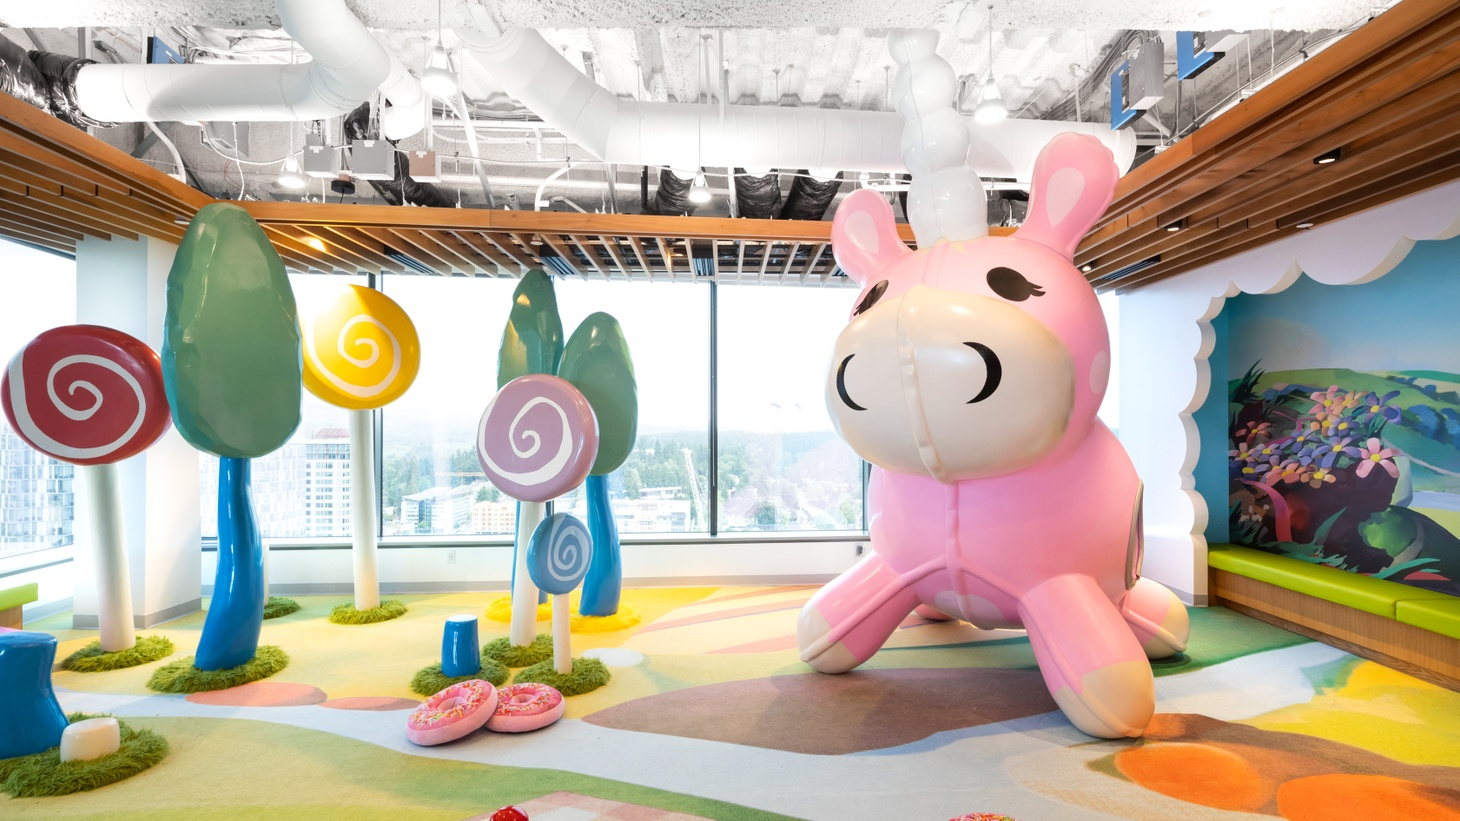 A funzone is at the new Valve headquarters in Bellevue, Washington. It's designed by Clive Wilkinson with JPC Architects.